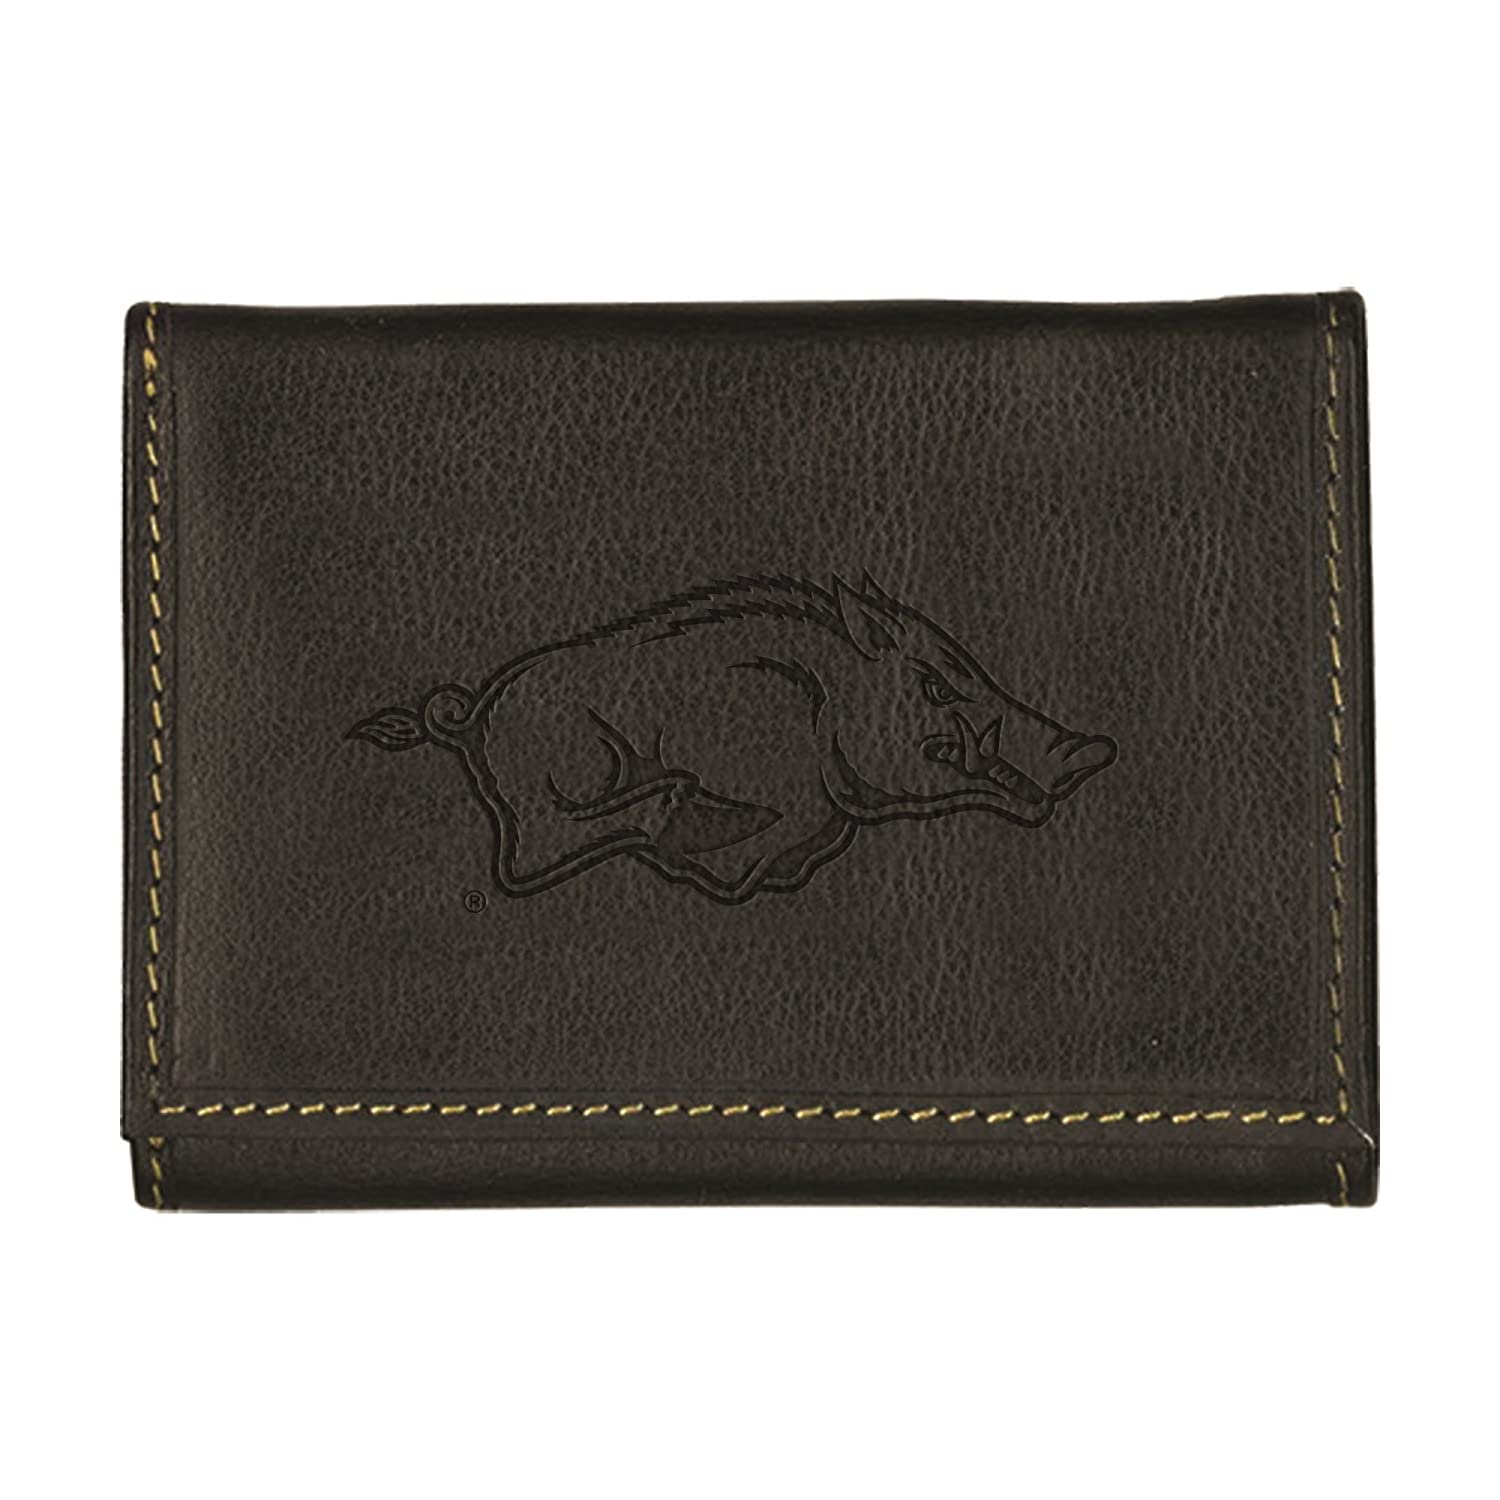 University of Arkansas Contrast Stitch Trifold Leather Wallet